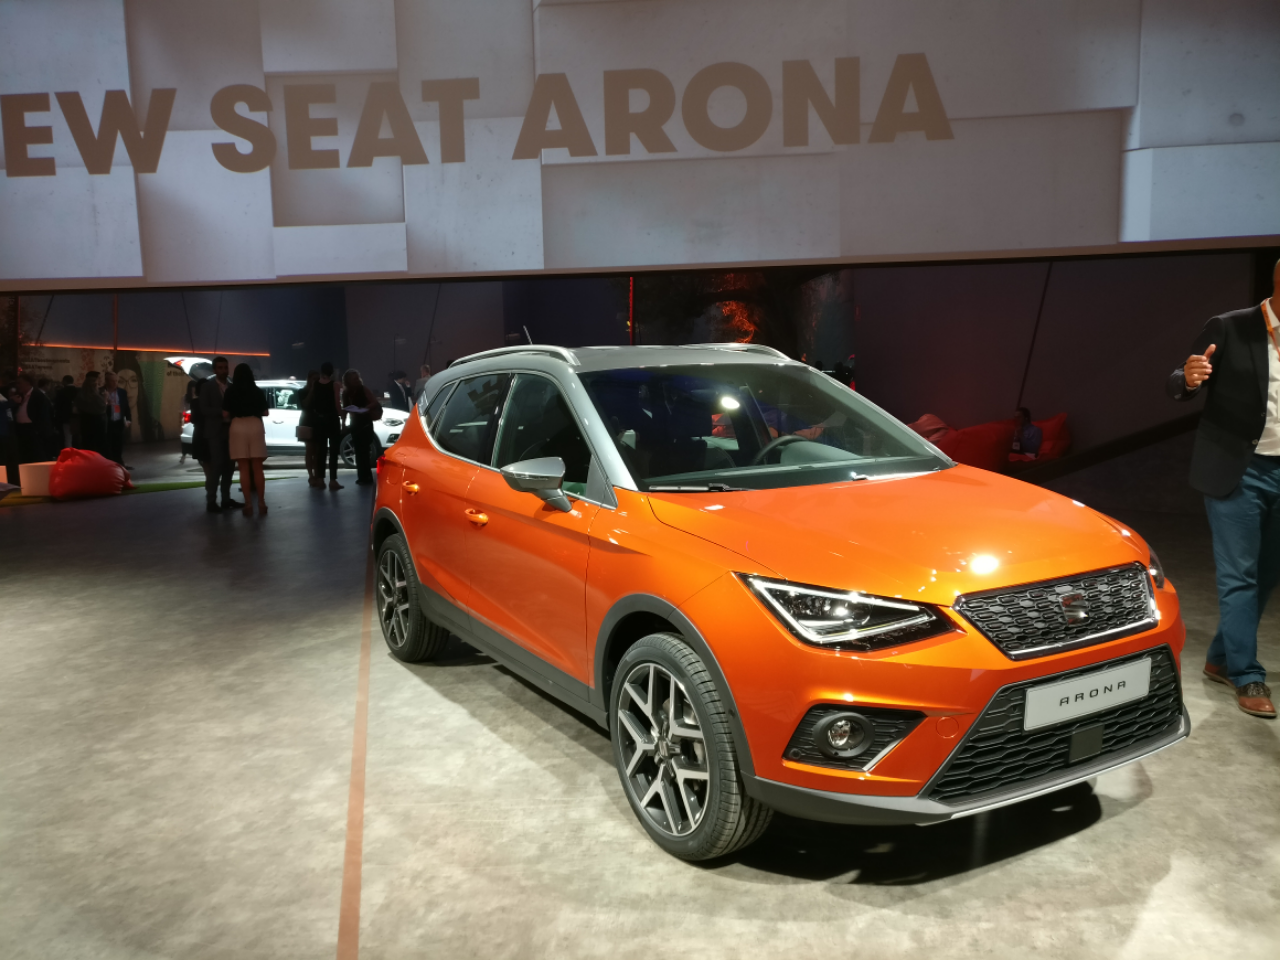 seat arona 2017 infos photos tout sur le rival du renault captur photo 14 l 39 argus. Black Bedroom Furniture Sets. Home Design Ideas